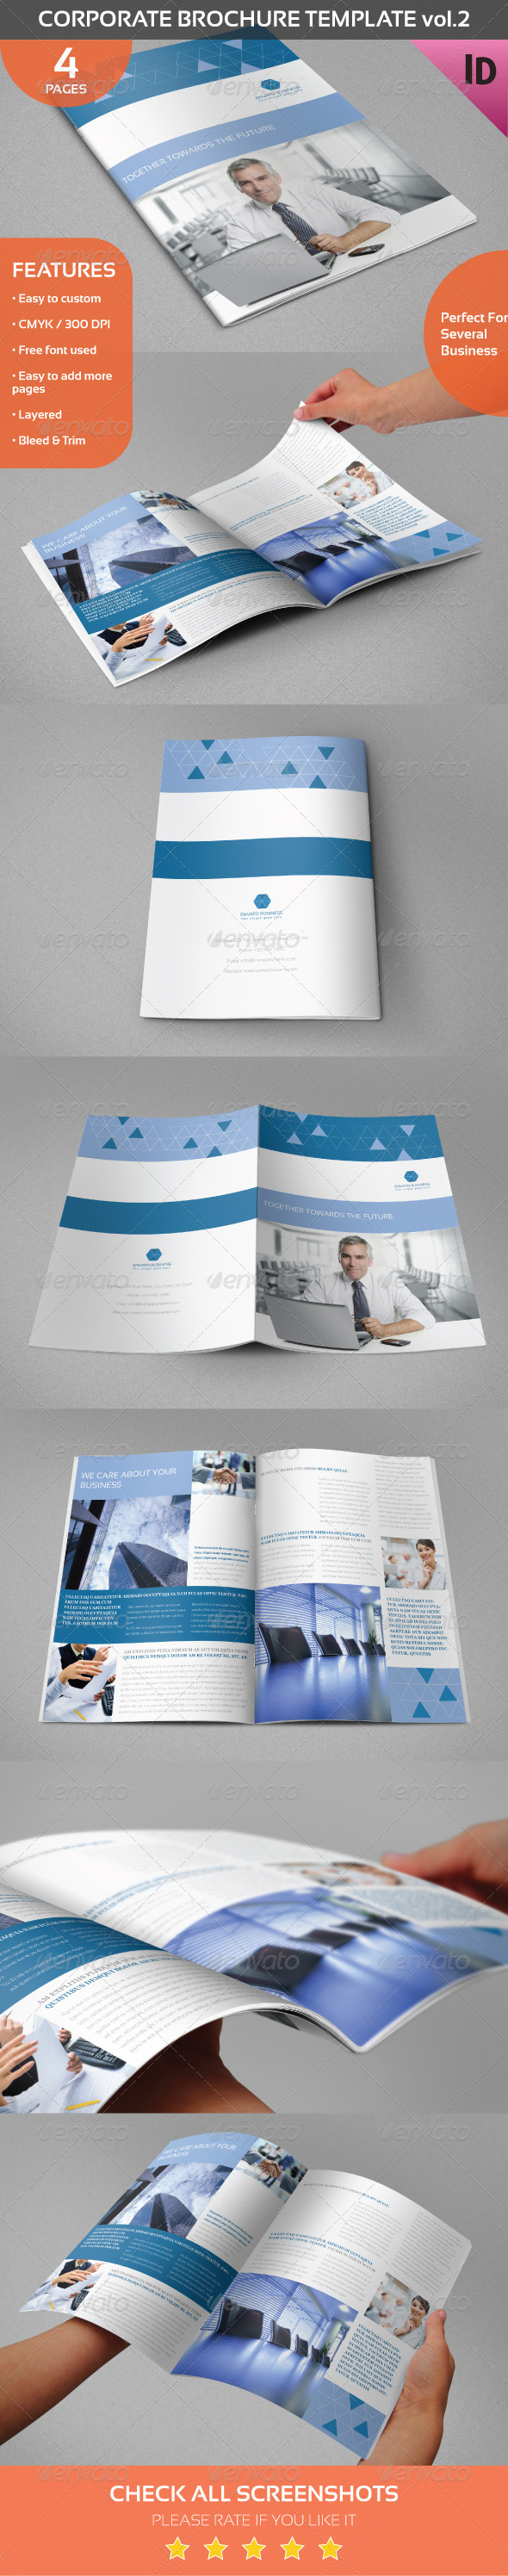 GraphicRiver Corporate Brochure Template vol.2 8515864